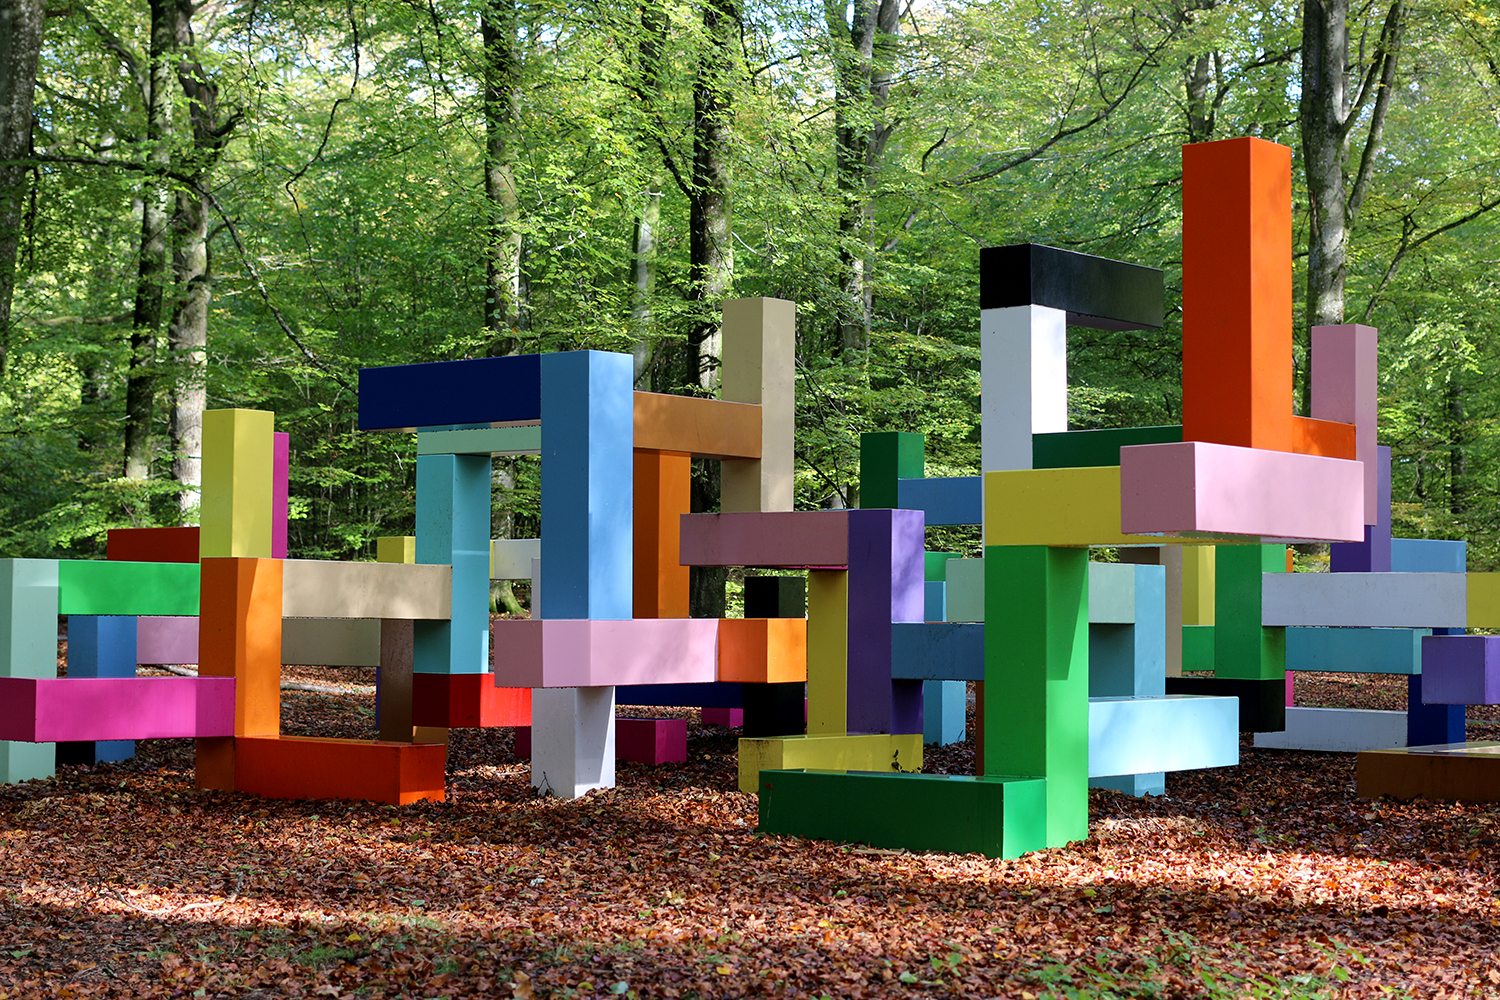 Jacob Dahlgren, Primary Structure 2011 Wanäs Sculpture Park